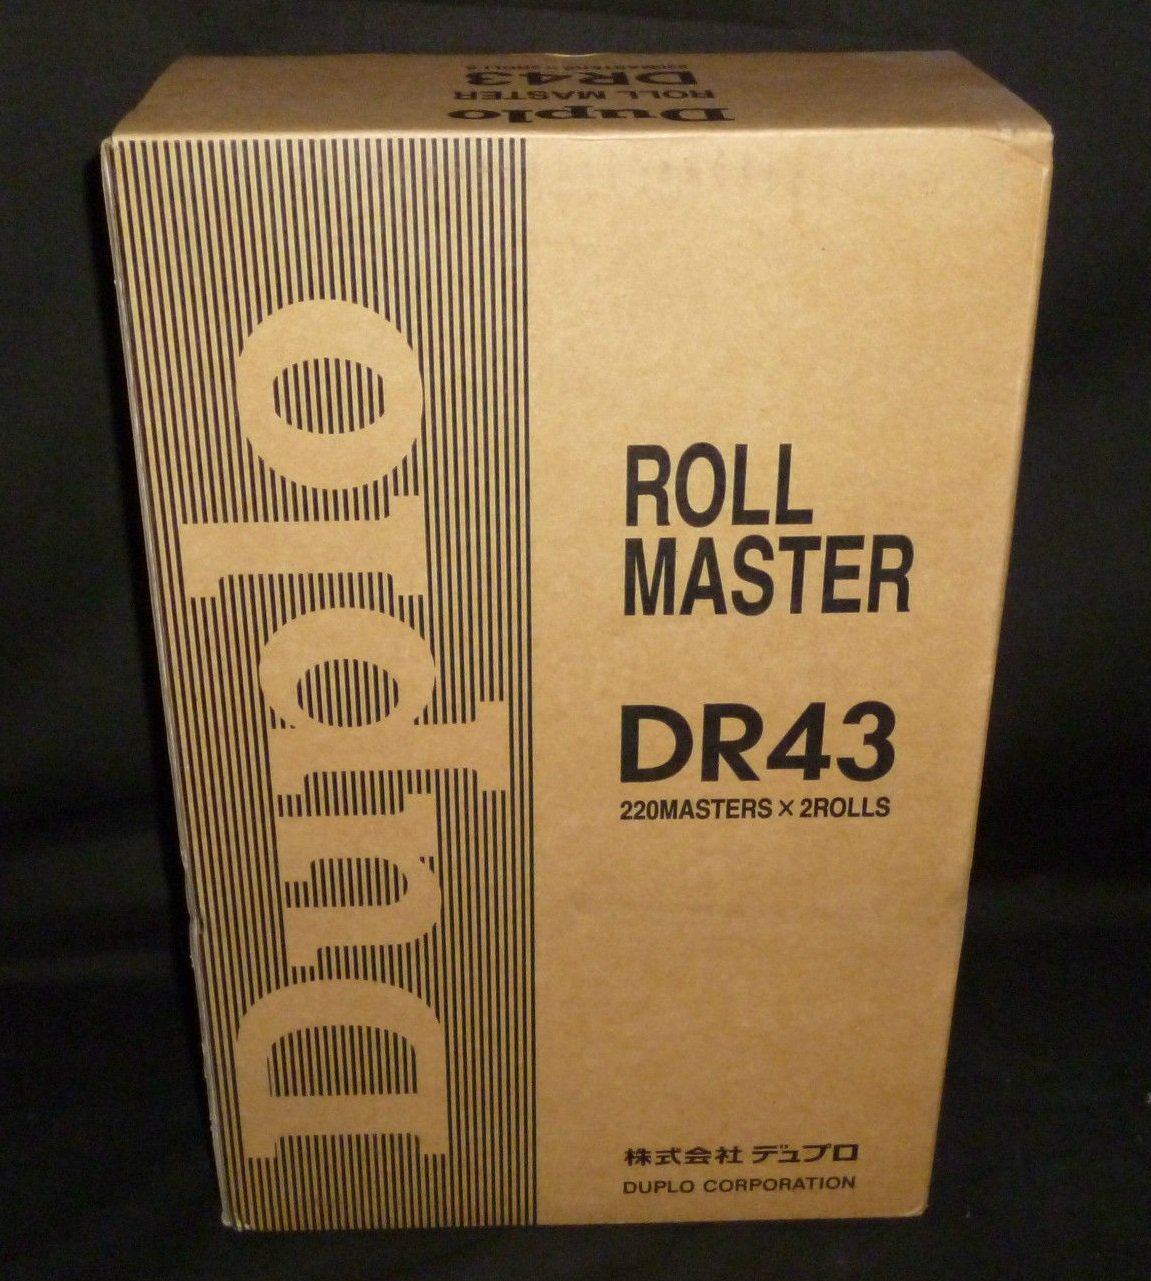 Genuine Original Duplo DR43 Master Rolls for Use In: DP-430/430e Digital Duplicators (DR-43 Masters). A3 Size. Box Contains (2) Masters. (220) Masters per Roll. (440) Masters Total.